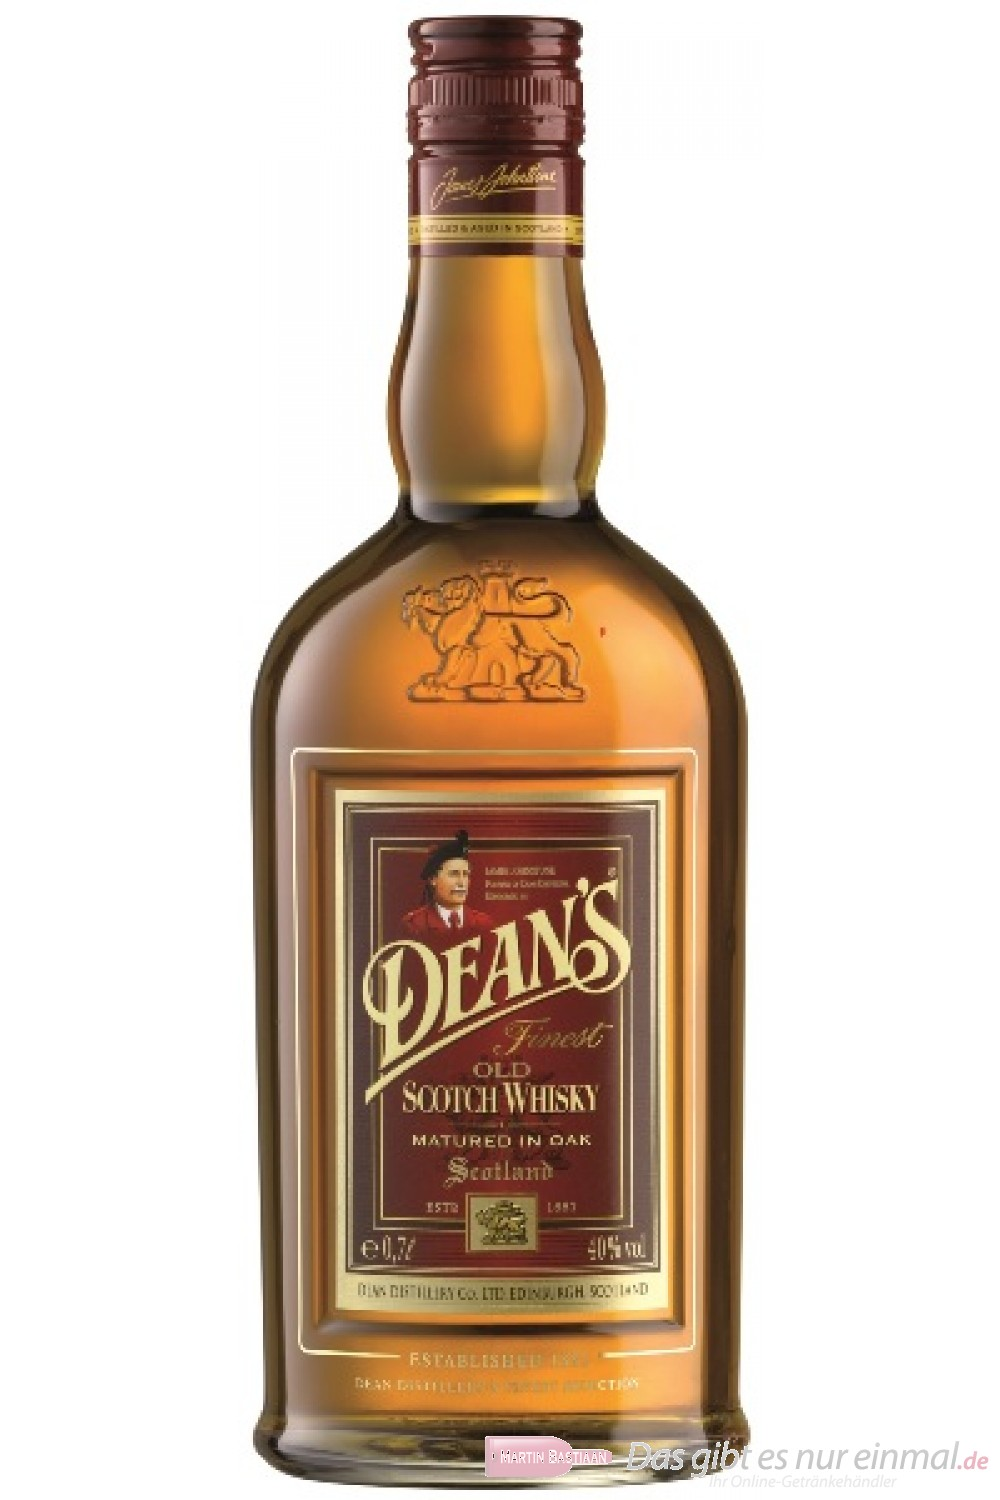 Deans Blended Scotch Whisky